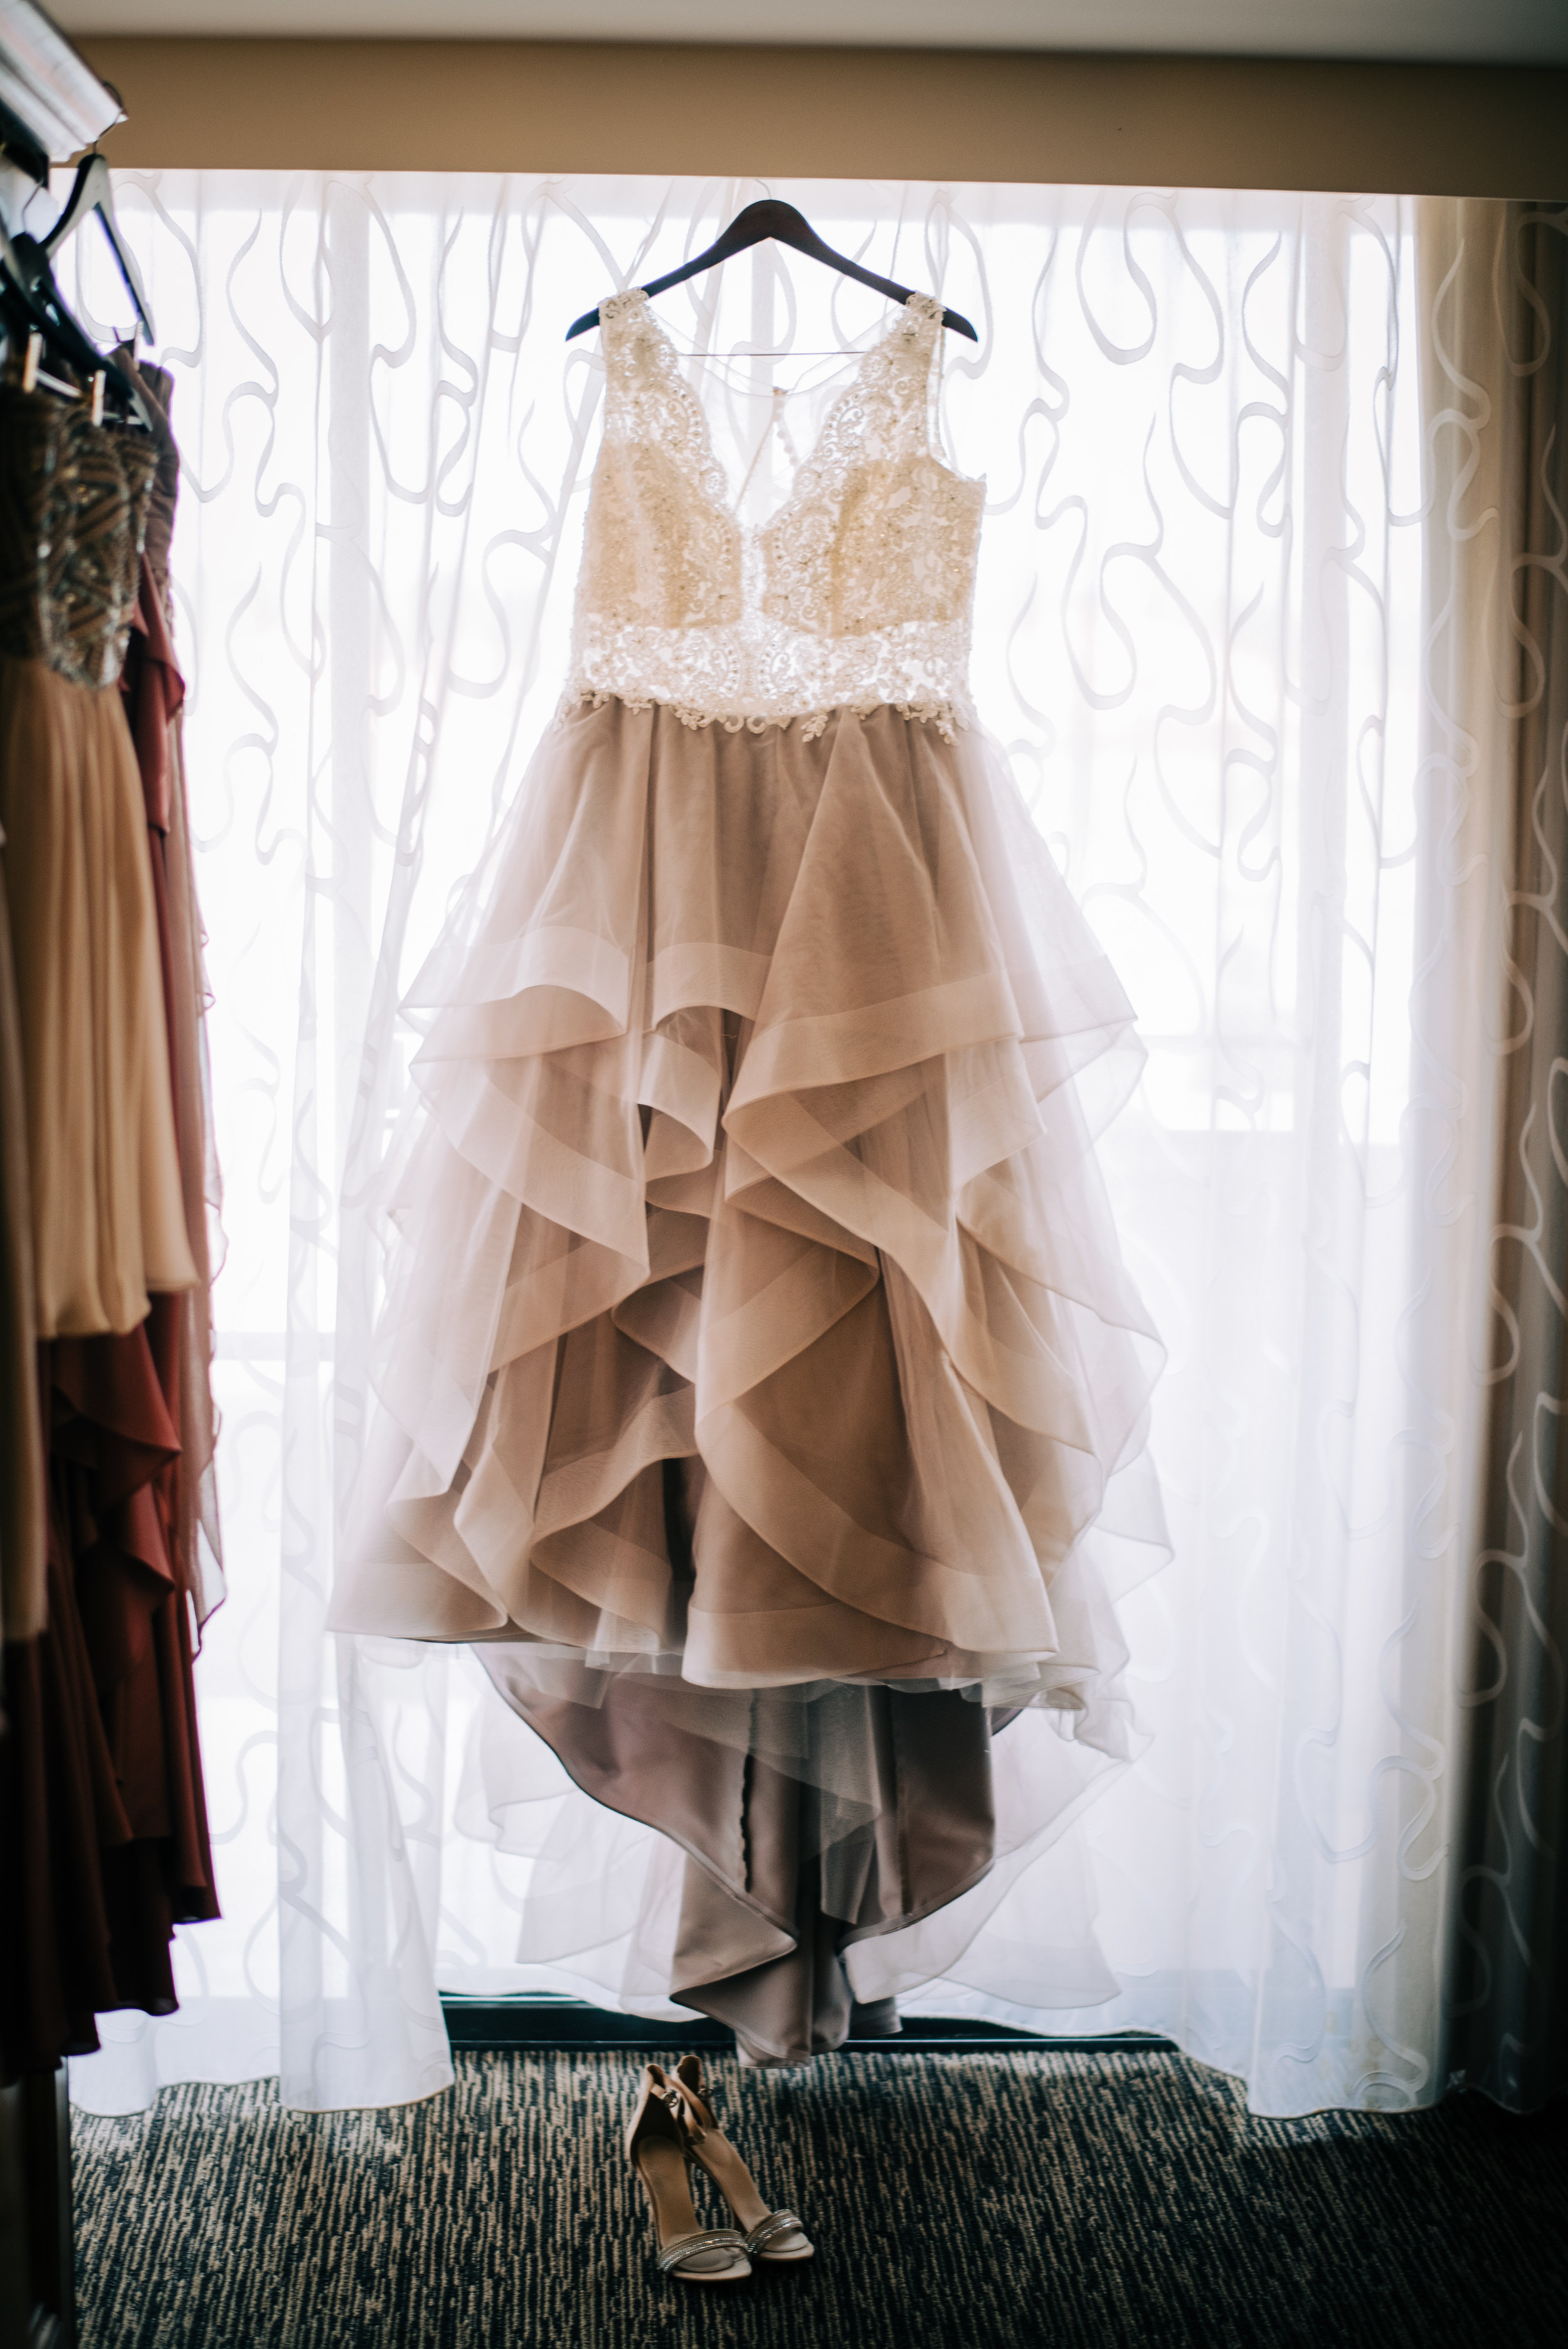 2 wedding dress blush wedding dress taupe wedding dress non white wedding dress ruffle tulle wedding dress lace wedding dress Life Design Events photos by Josh Snyder Photography.jpg